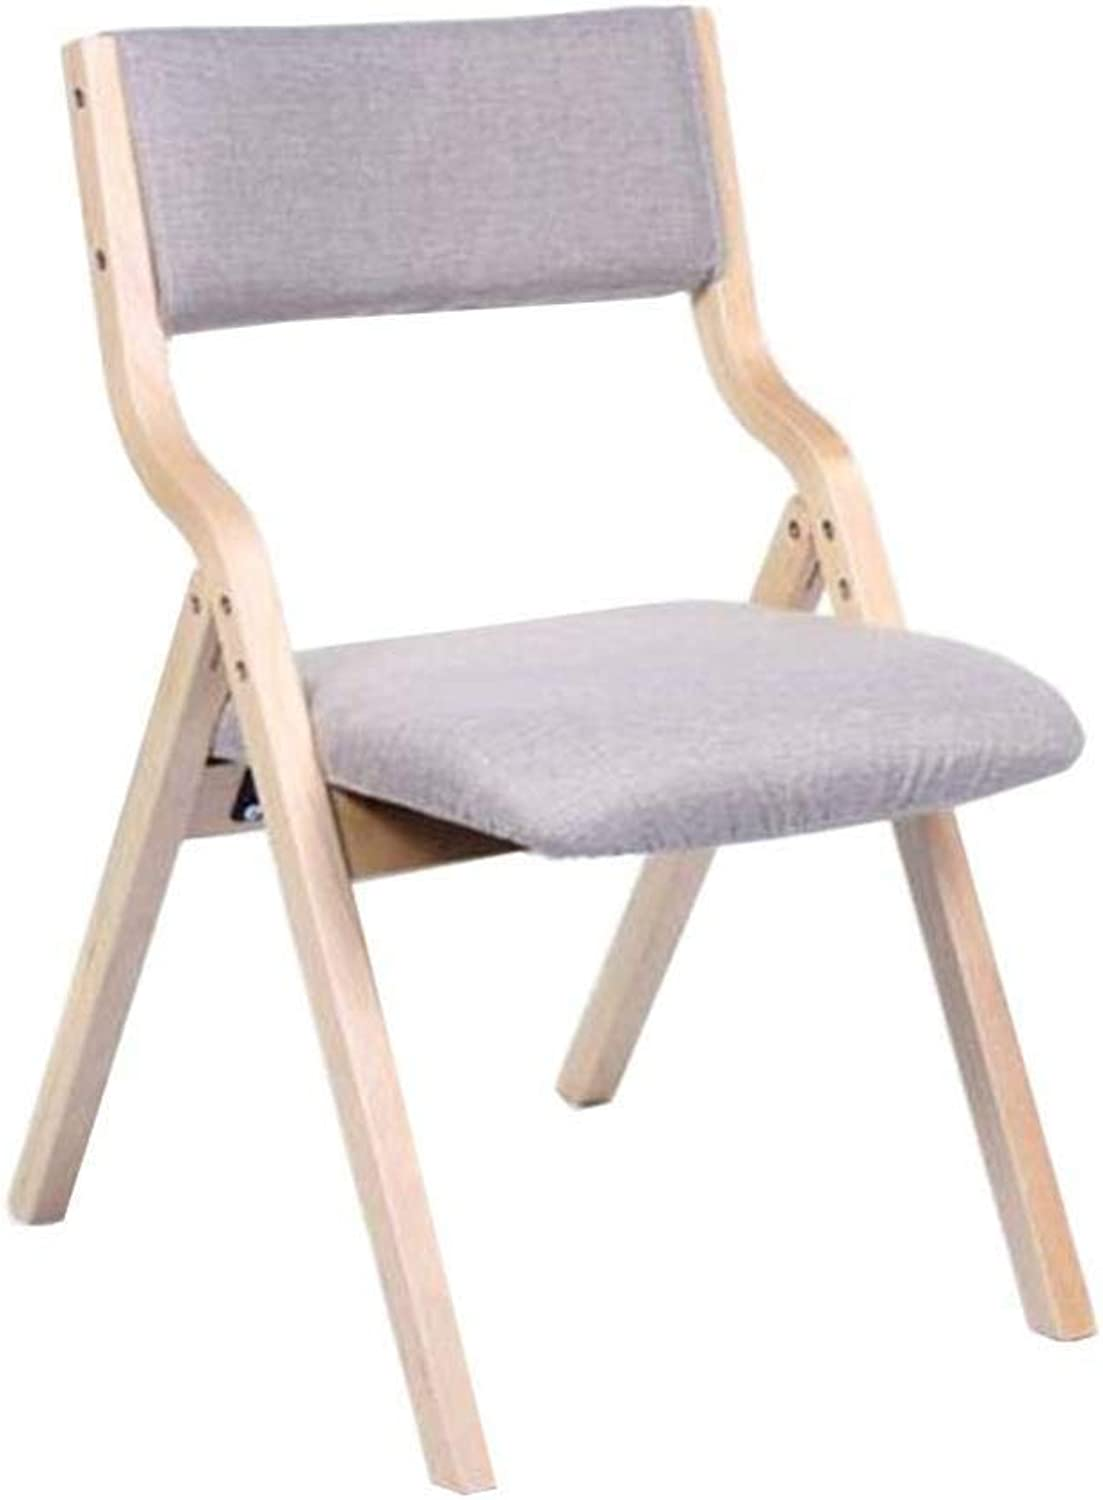 FENGFAN Folding Chairs, Solid Wood Frame Linen Cover Upholstered Kitchen Home Furniture Reception Chair